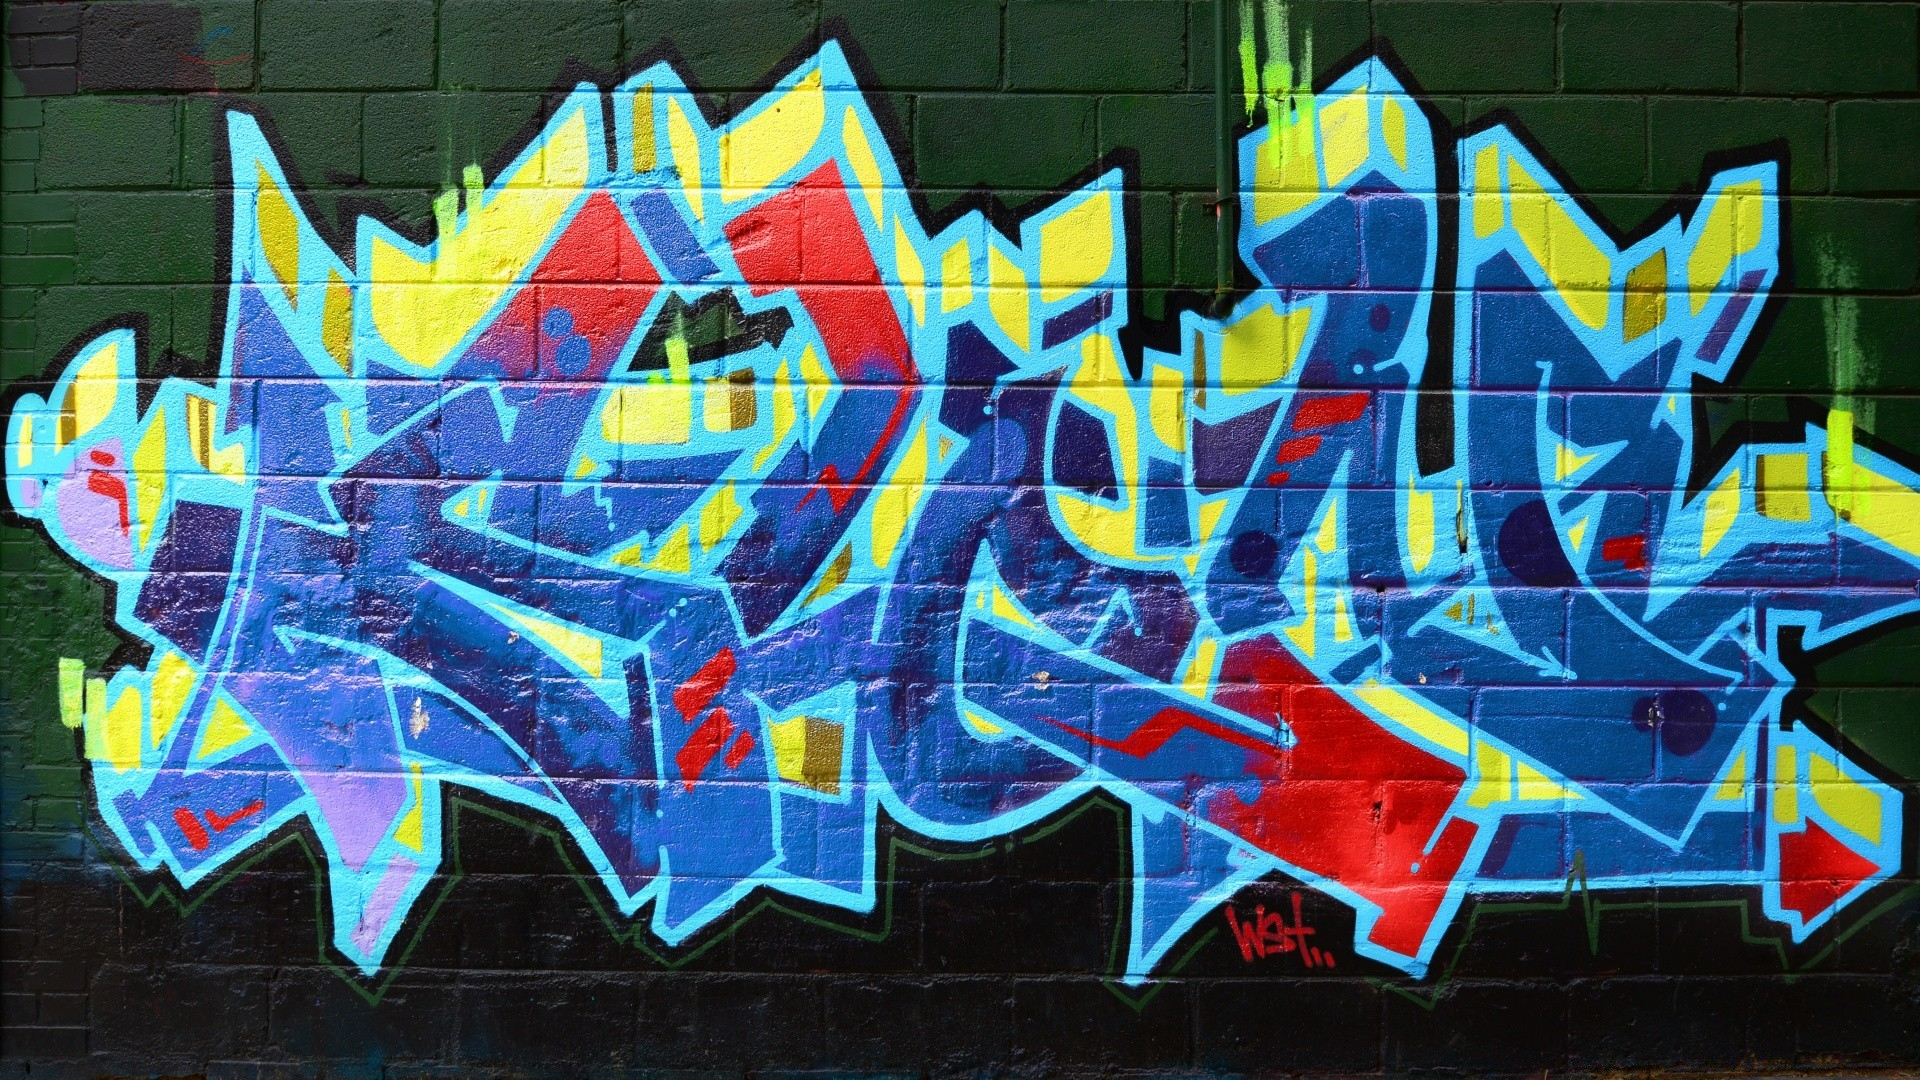 Graffiti On Wall IPhone Wallpapers For Free